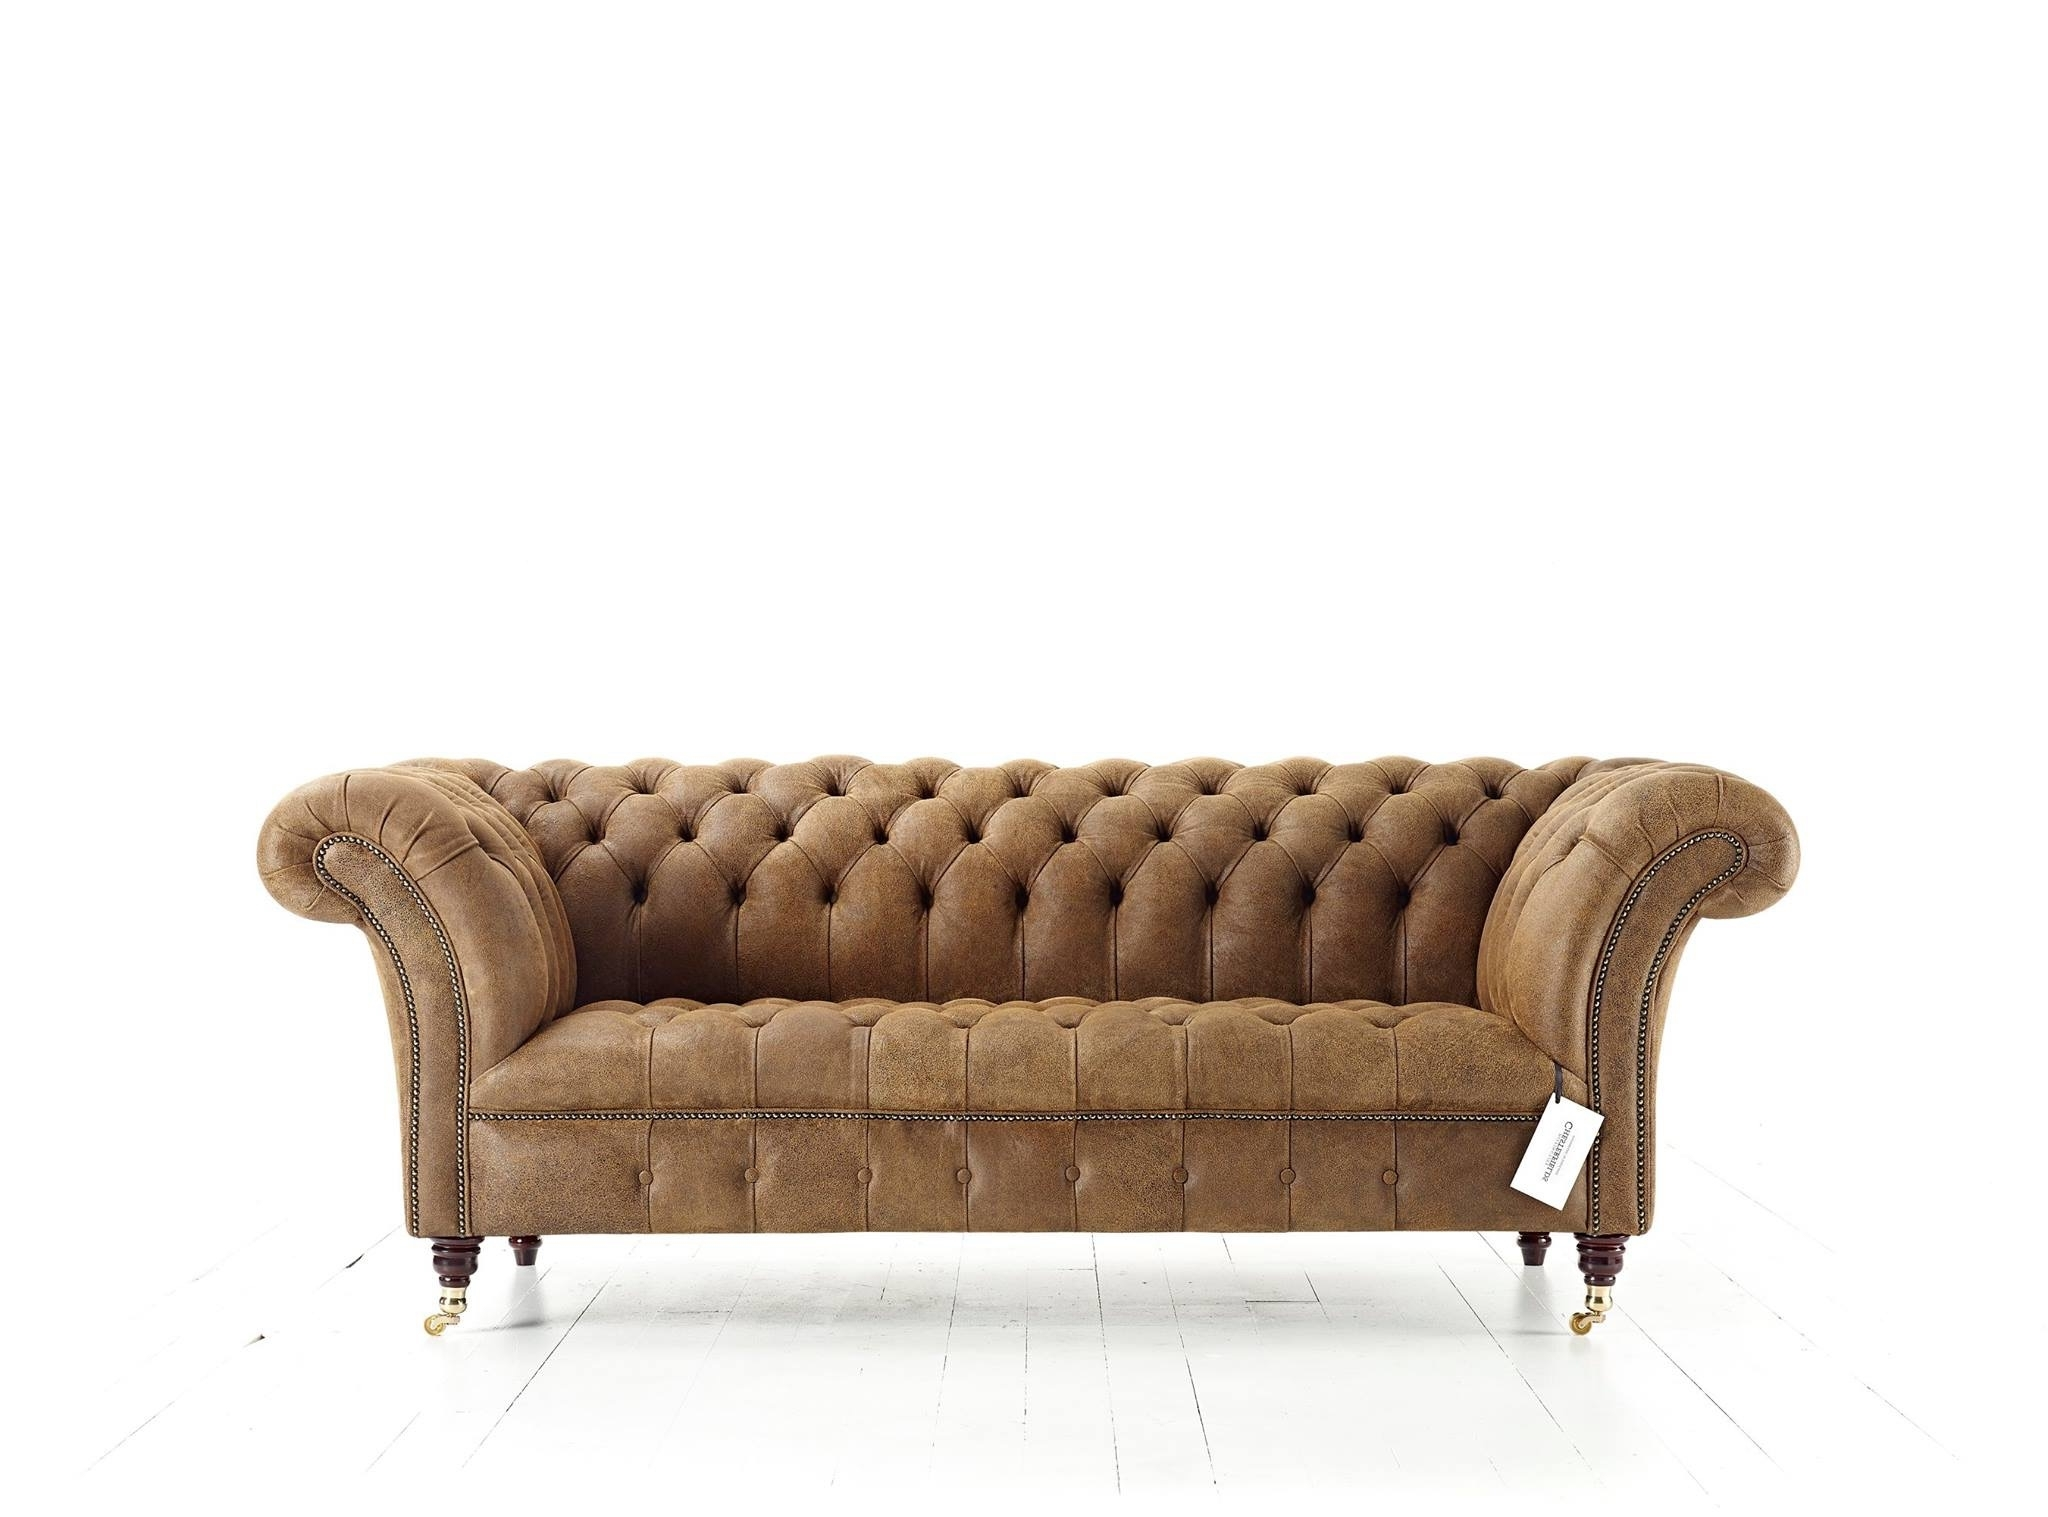 Fashionable Flair Wide Arm Chesterfield Blenheim Sofa With Tufted Button Seat Within Wide Sofa Chairs (View 19 of 20)